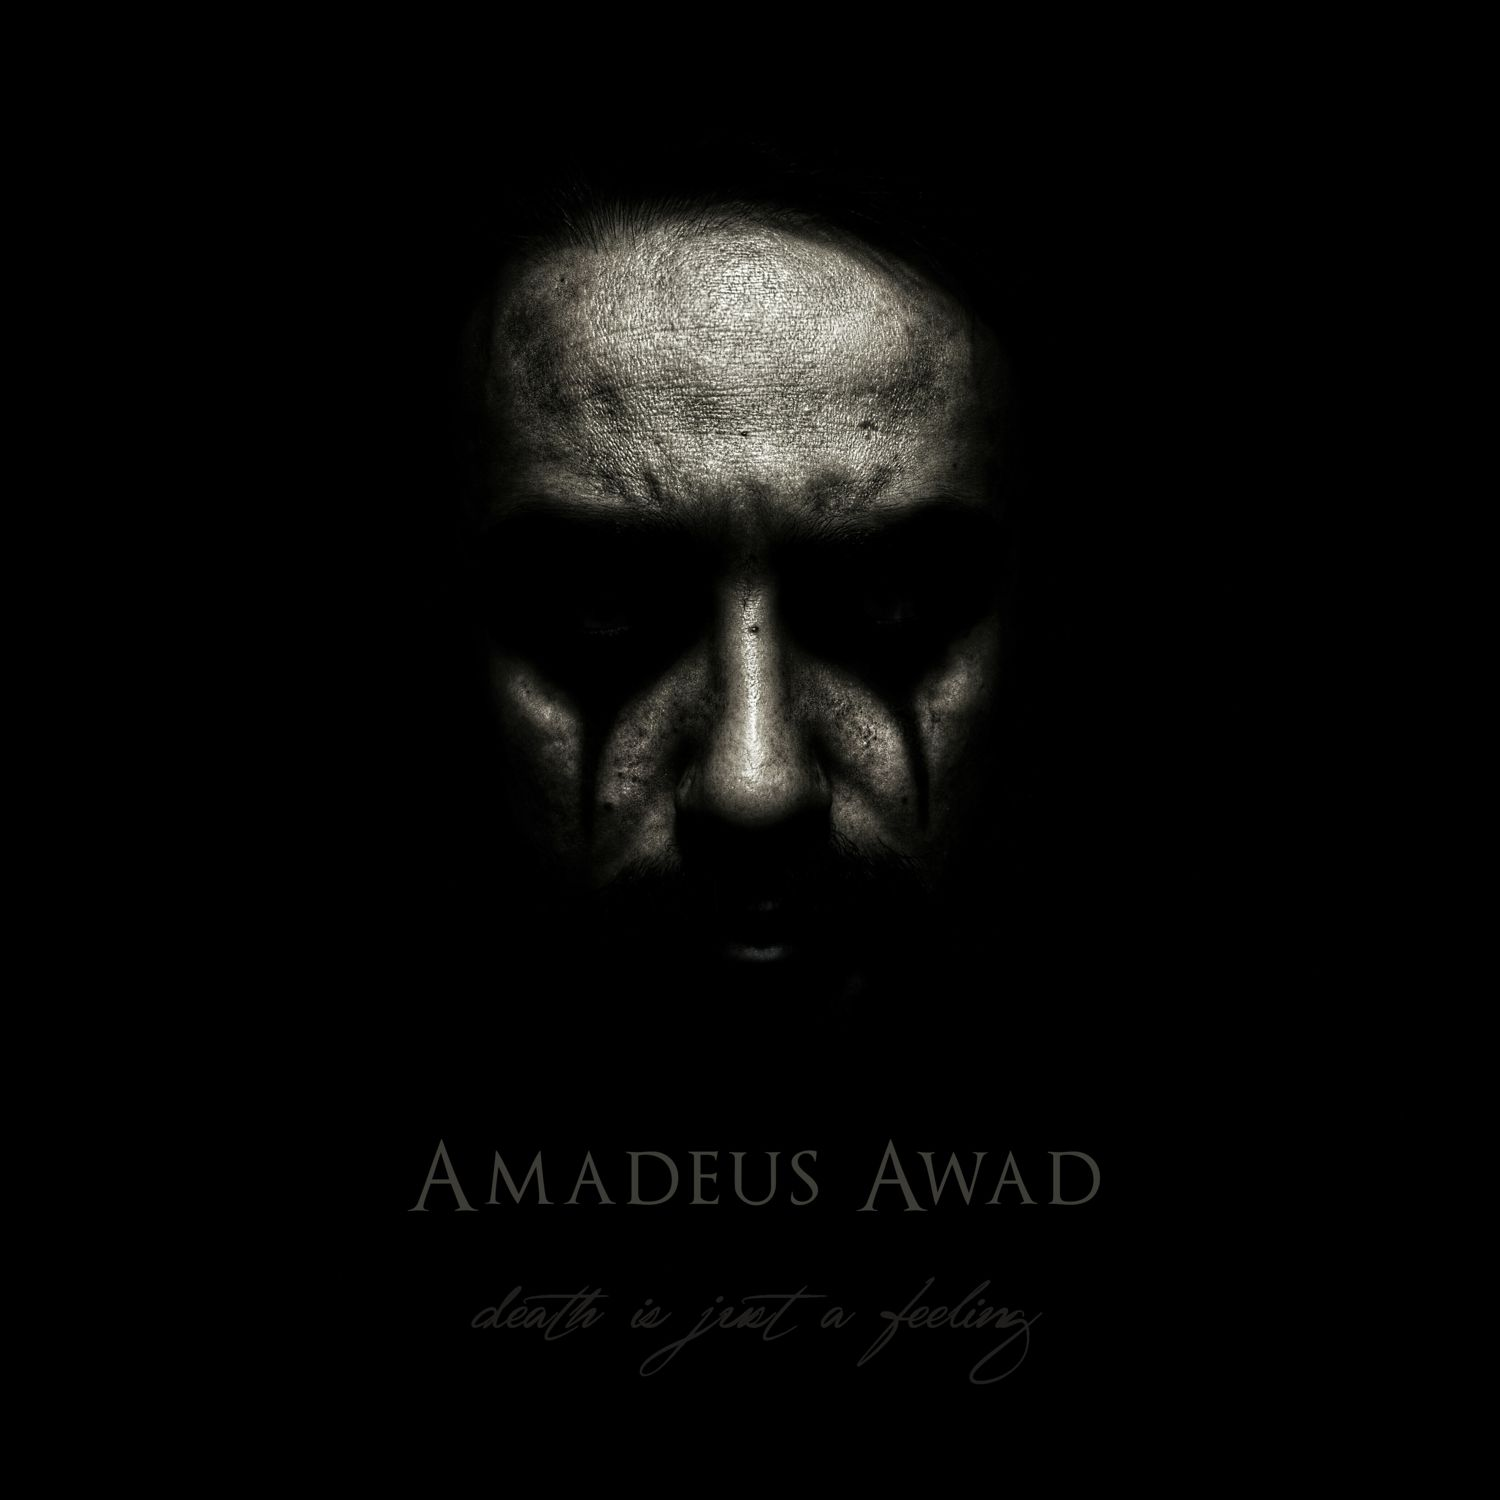 Amadeus Awad: Death Is Just a Feeling